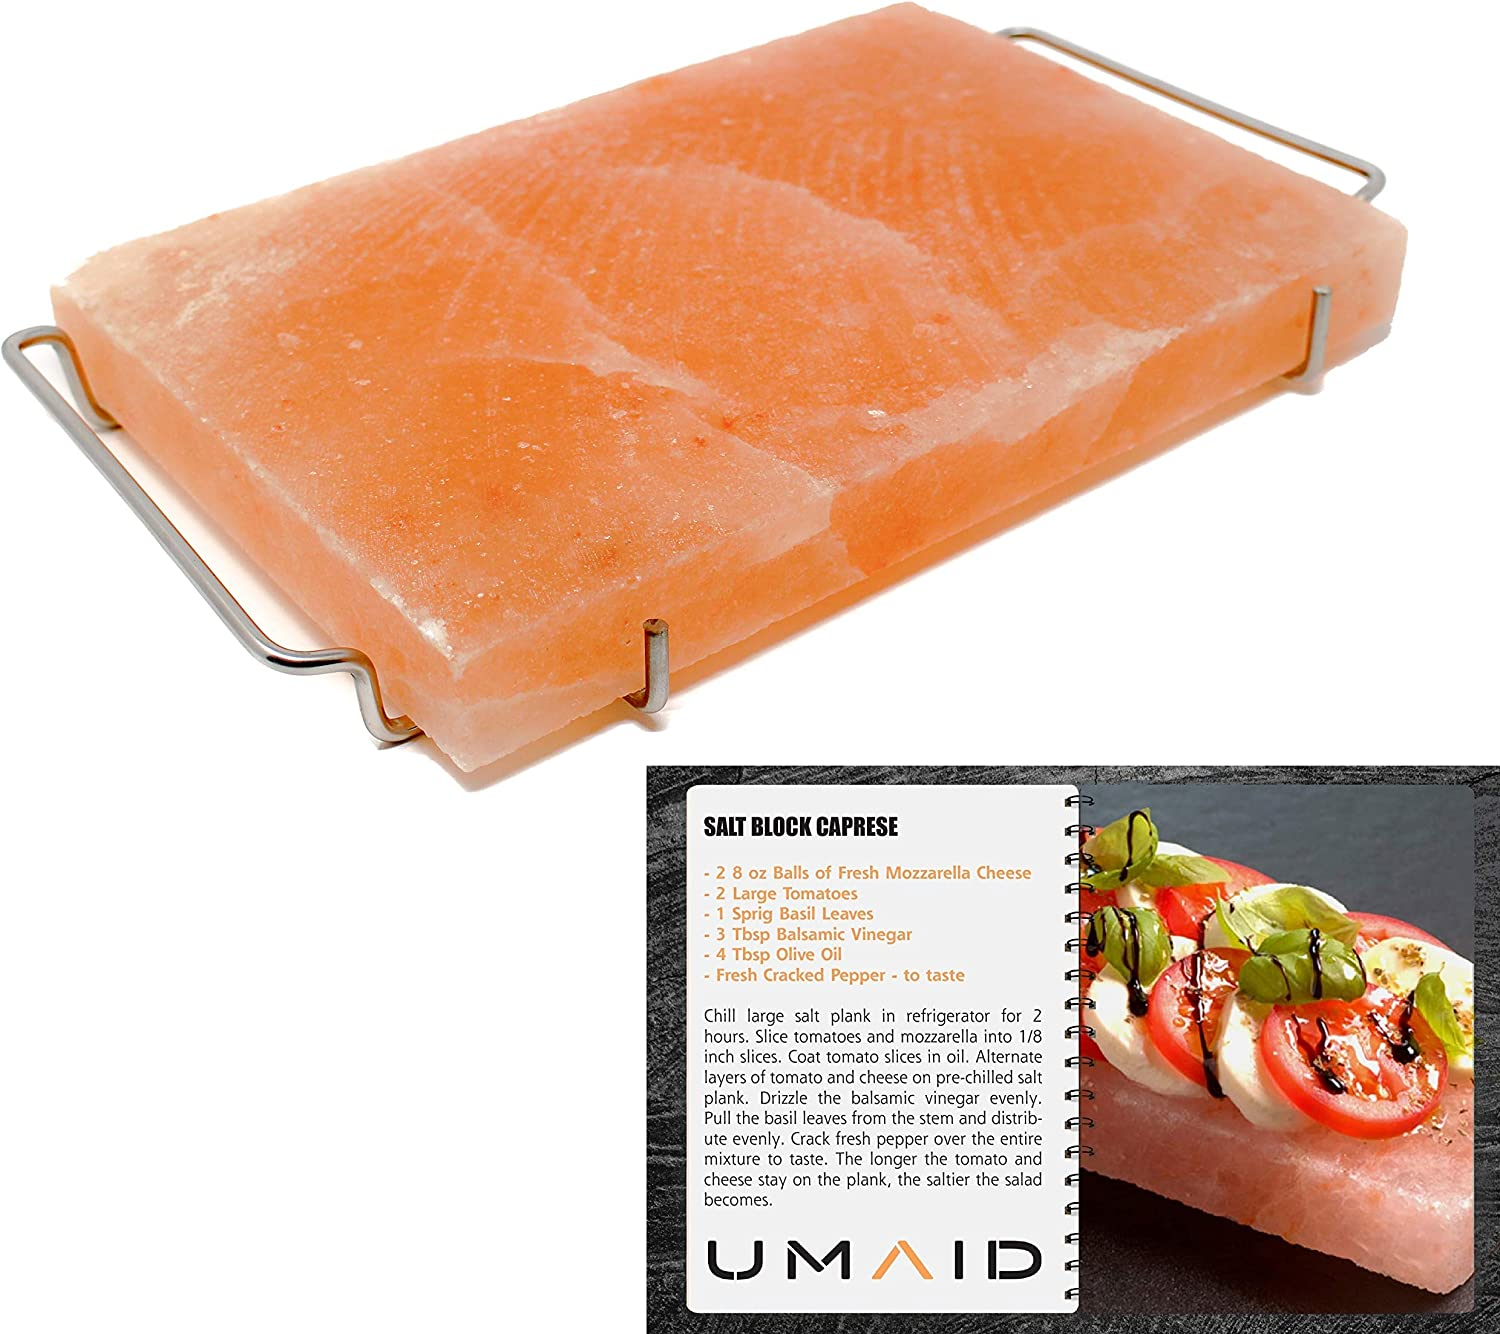 UMAID Natural Himalayan Salt Block Cooking Plate 12 X 8 X 1.5 for Cooking, Grilling, Cutting and Serving, Food Grade Salt with Stainless Steel Tray Set with Recipe Book